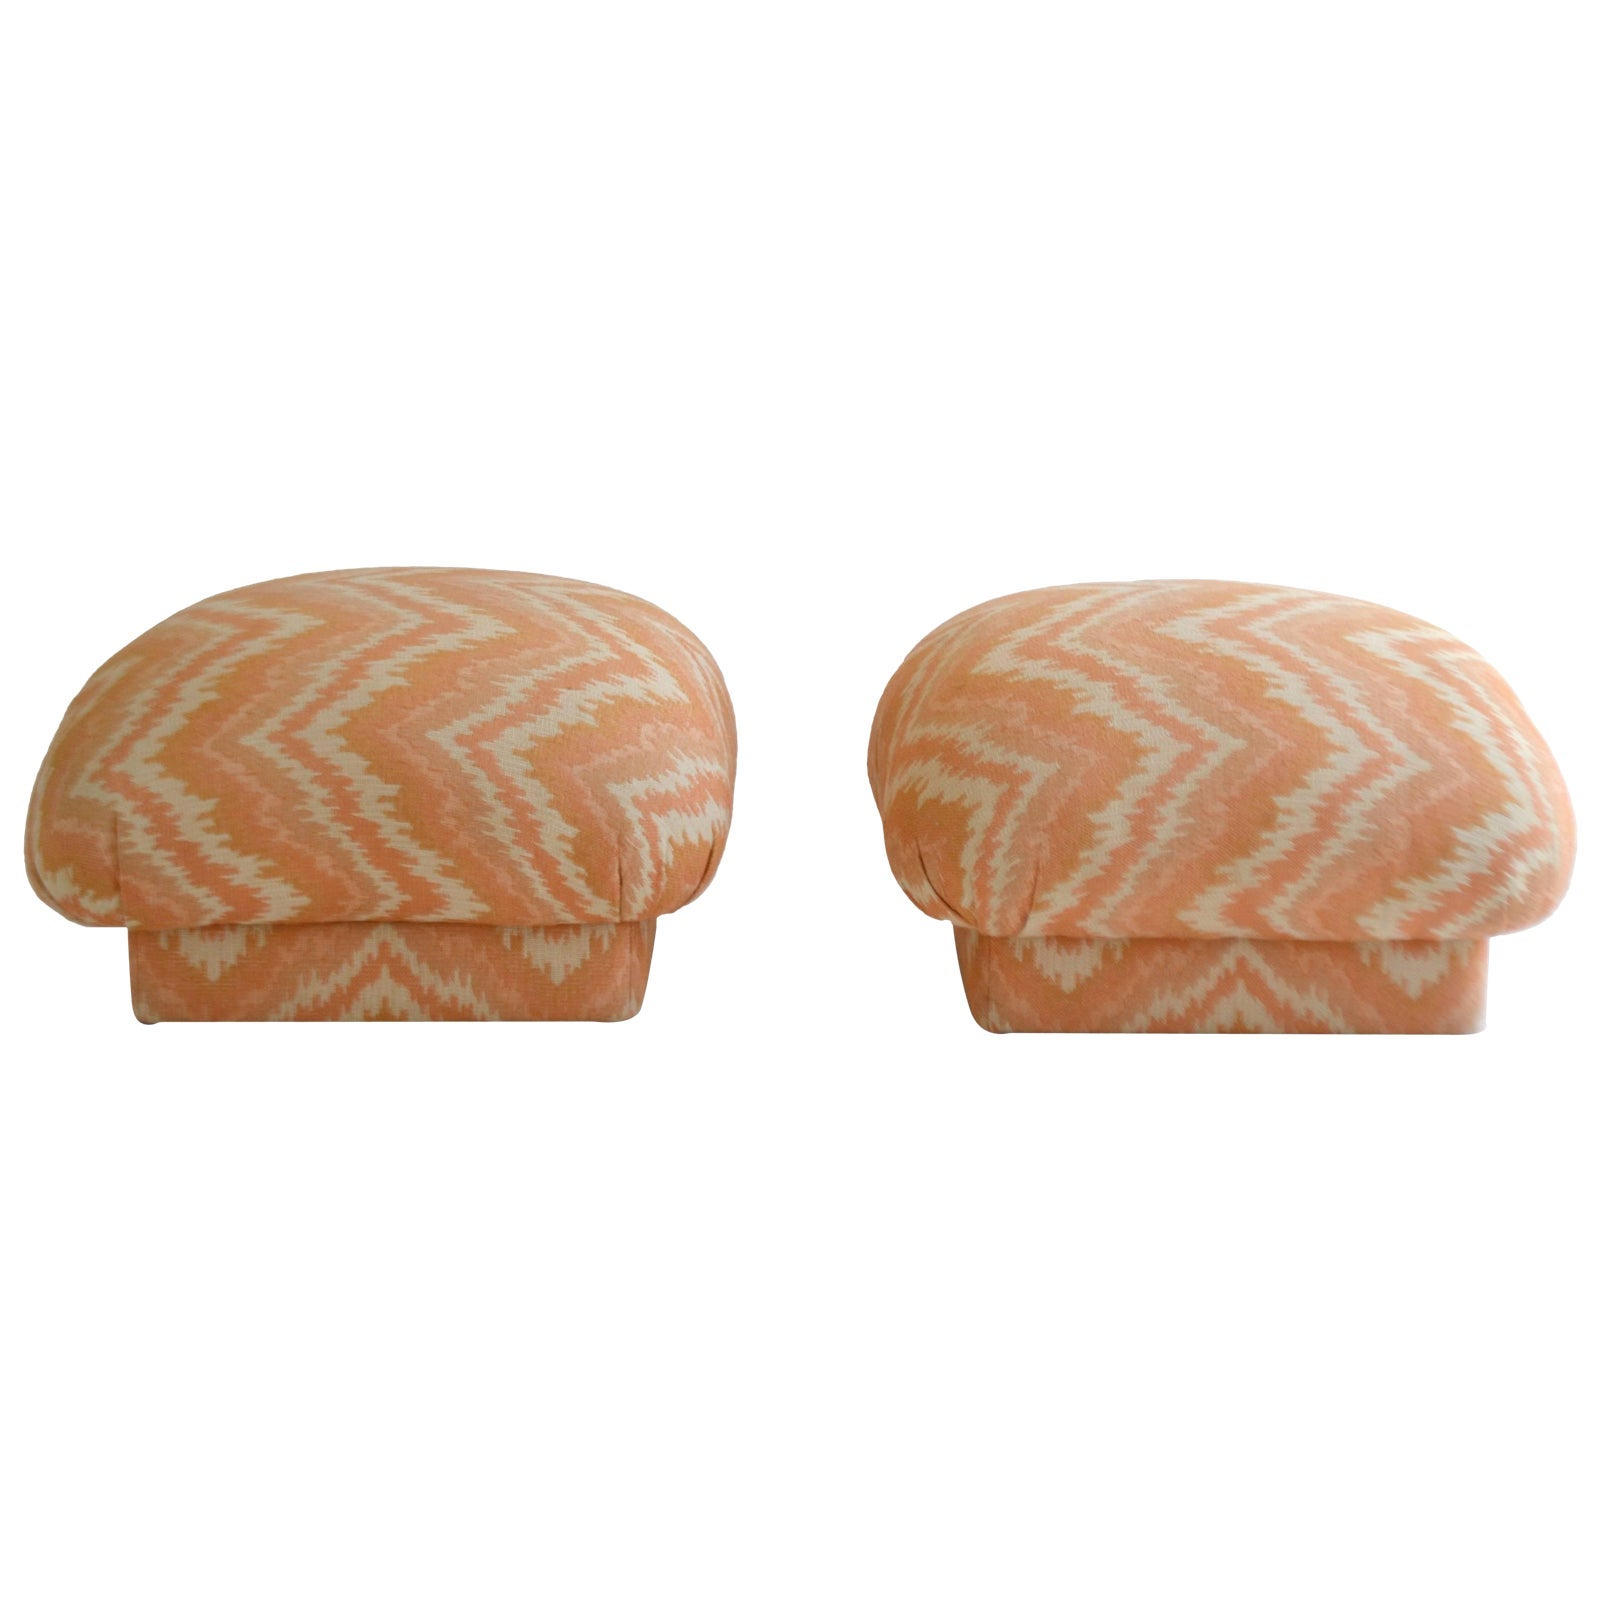 pair-of-midcentury-stools-or-benches-0675